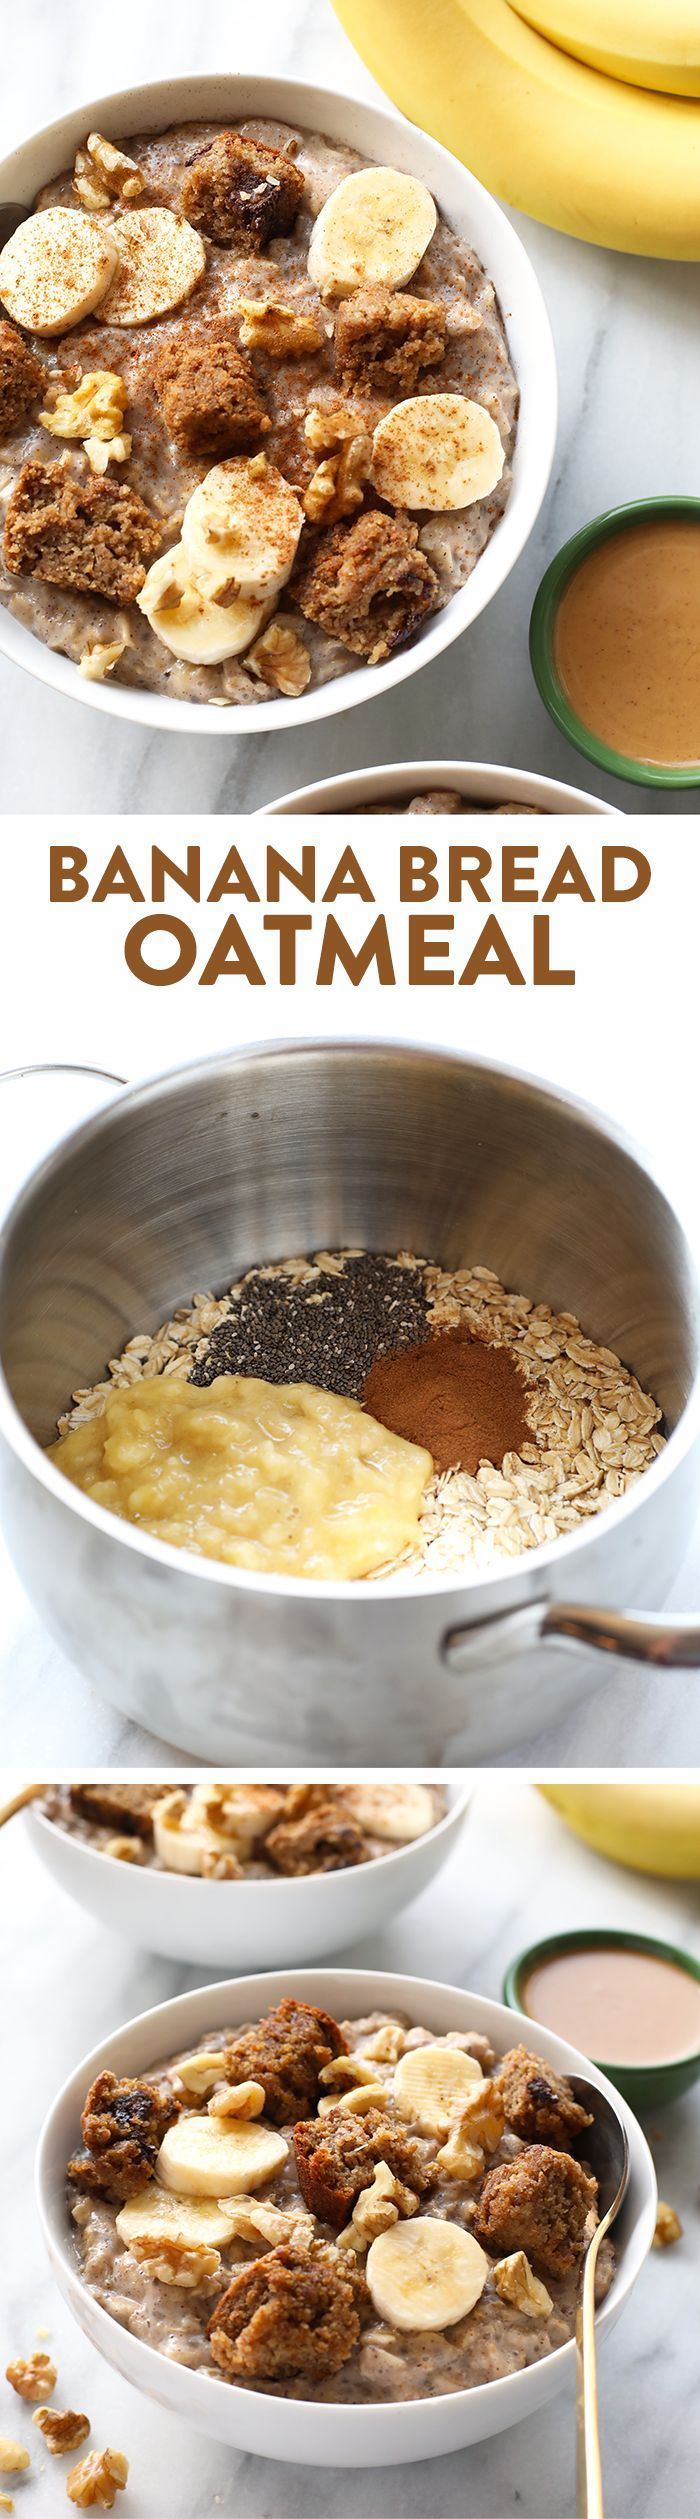 This fluffy banana bread oatmeal is double whipped on the stove and made with chia seeds to make it extra fluffy and deliciously filling!